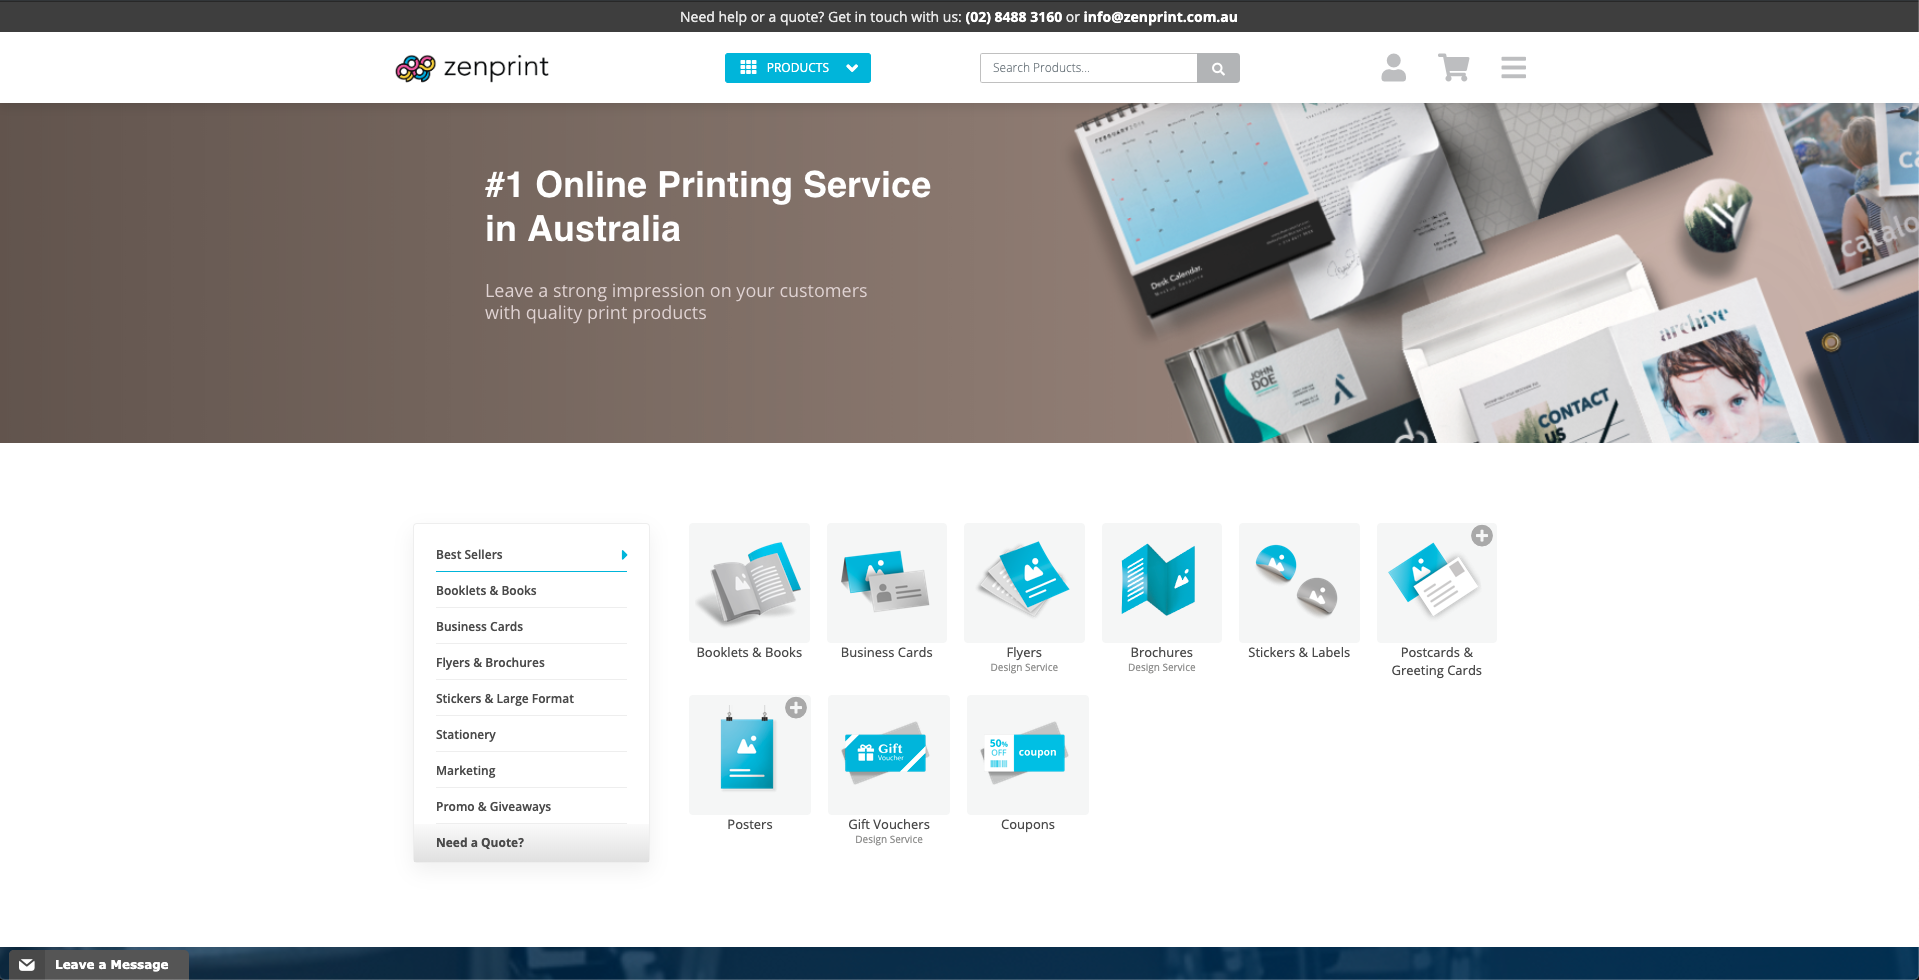 zenprint-homepage